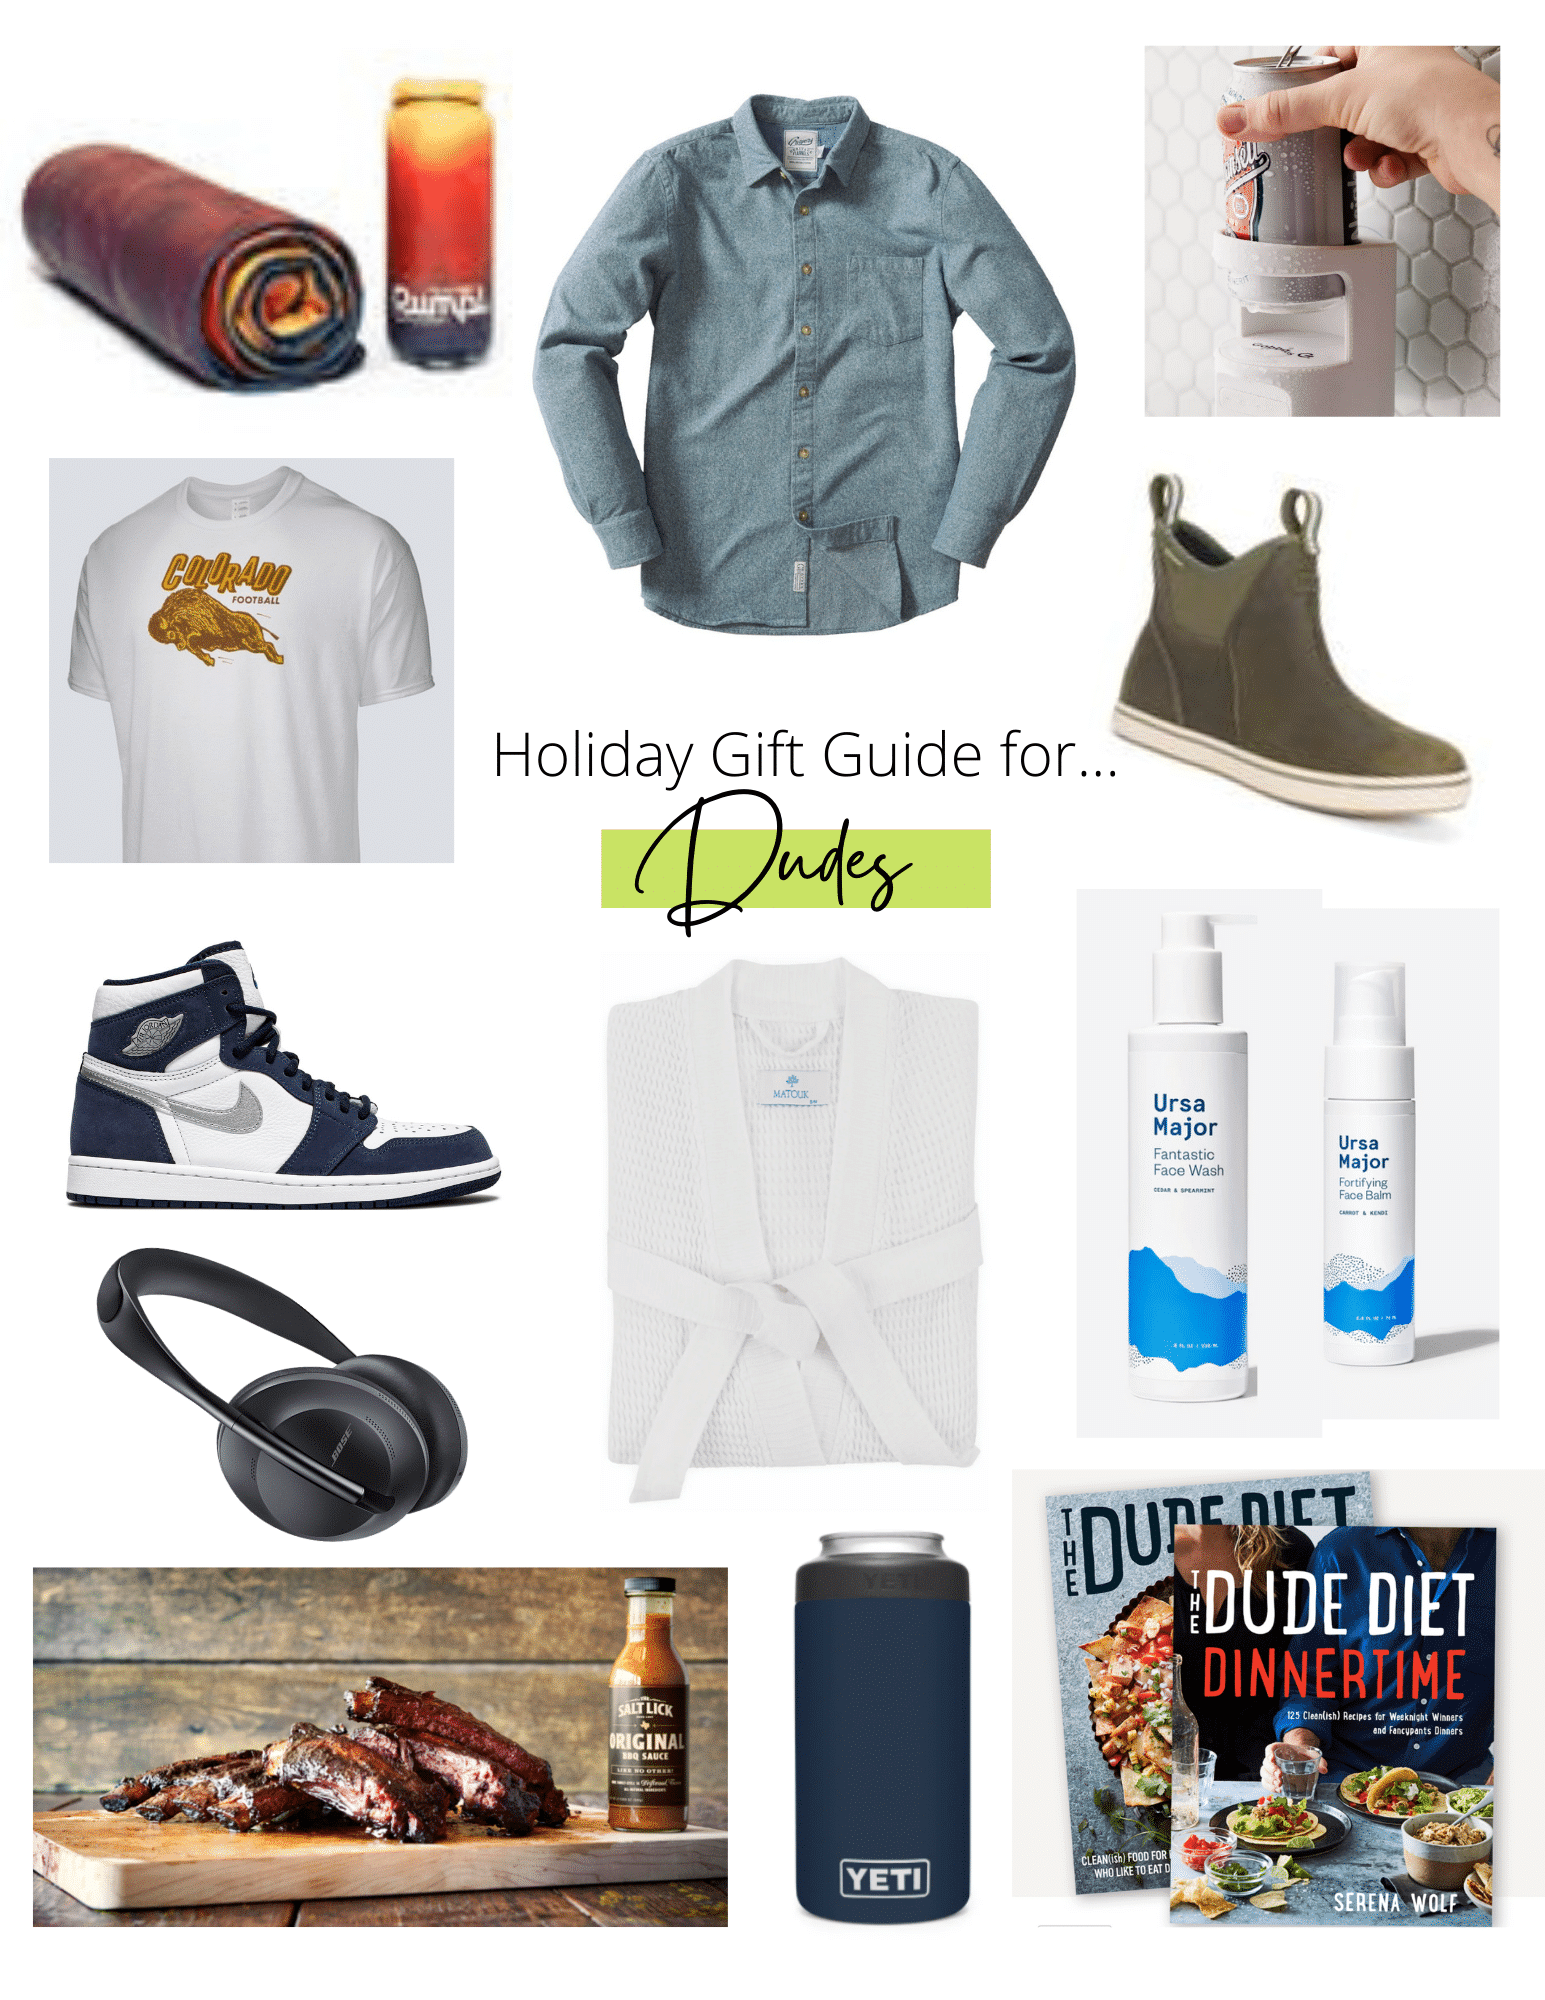 Collage of holiday gift ideas for men.